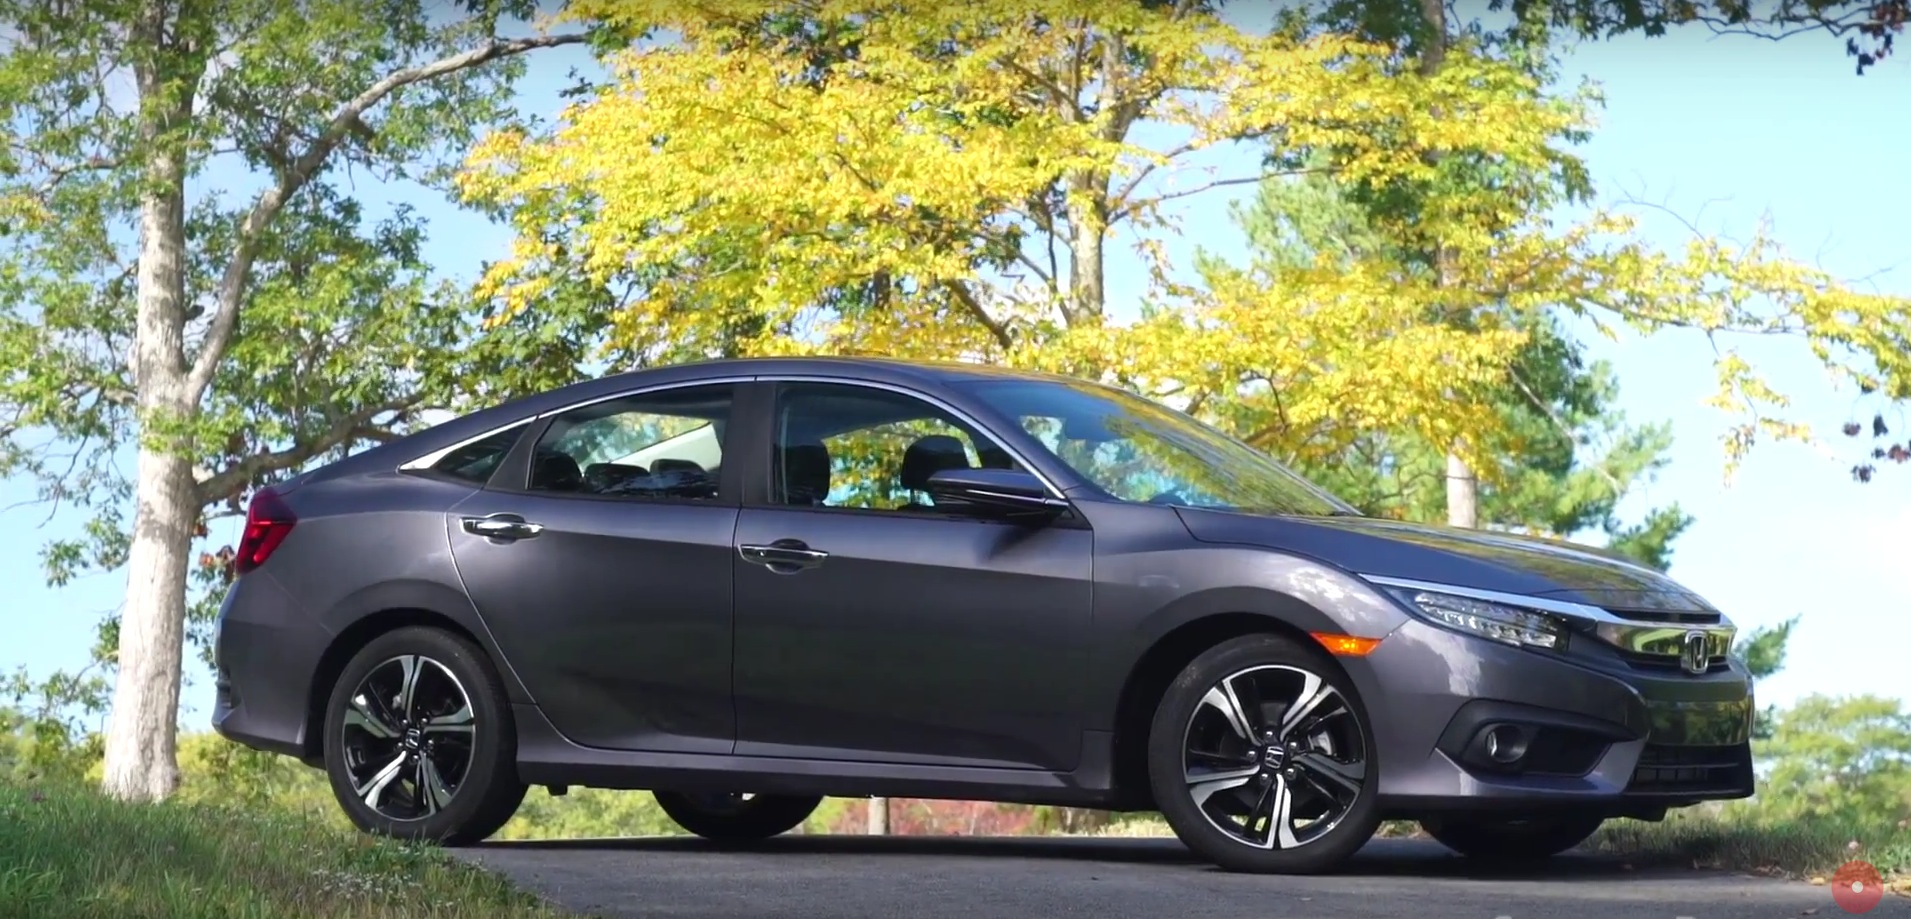 2016 honda civic consumer reports review finds a few flaws for 2016 honda civic ex t review